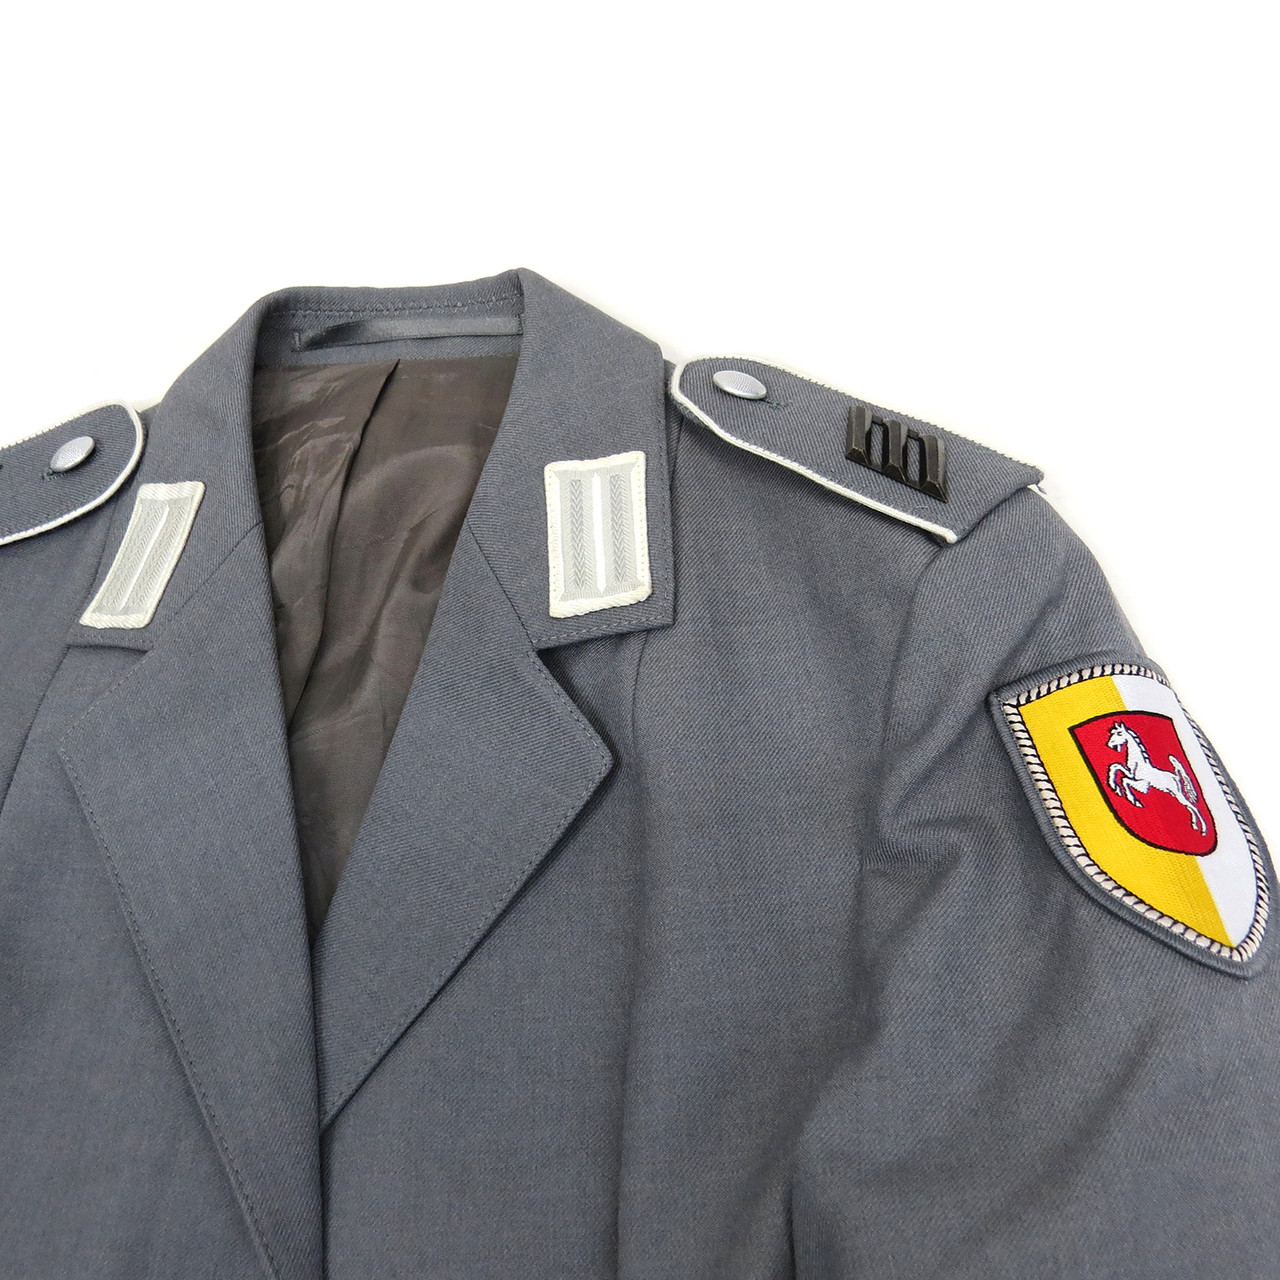 Bw Female Music Corps Jacket: One Only